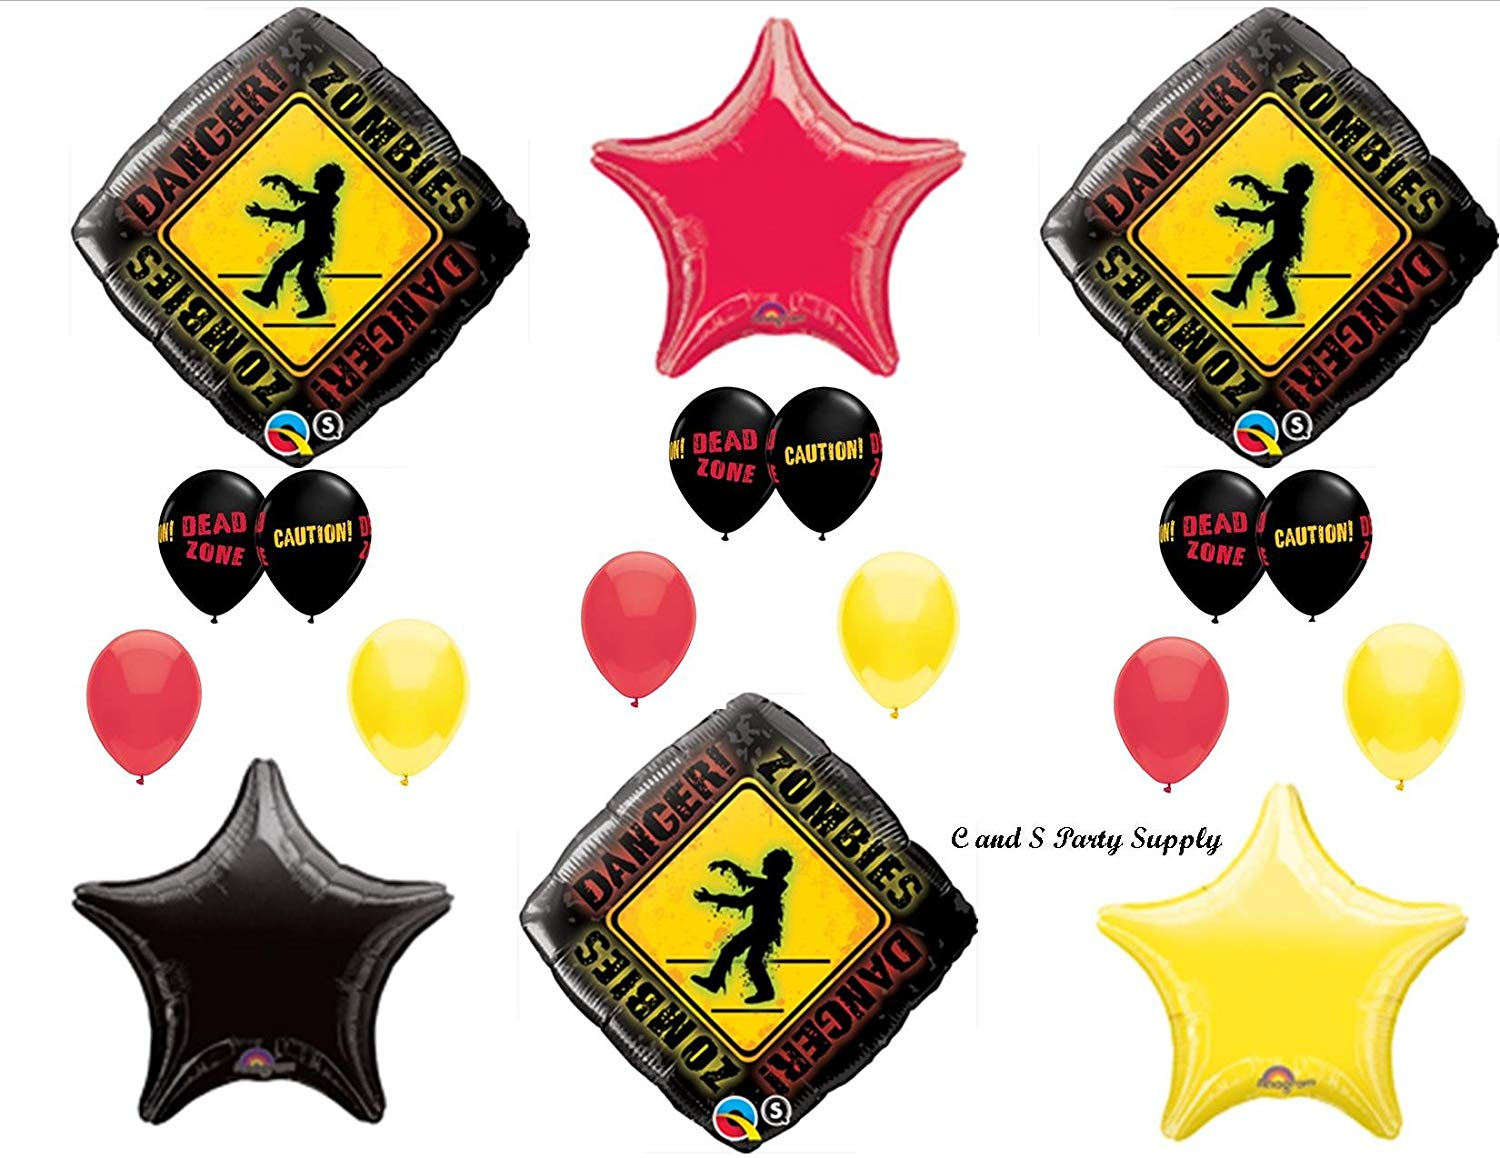 1 X Zombies The Walking Dead Zone Birthday Party Balloons Decorations  Supplies NEW!.